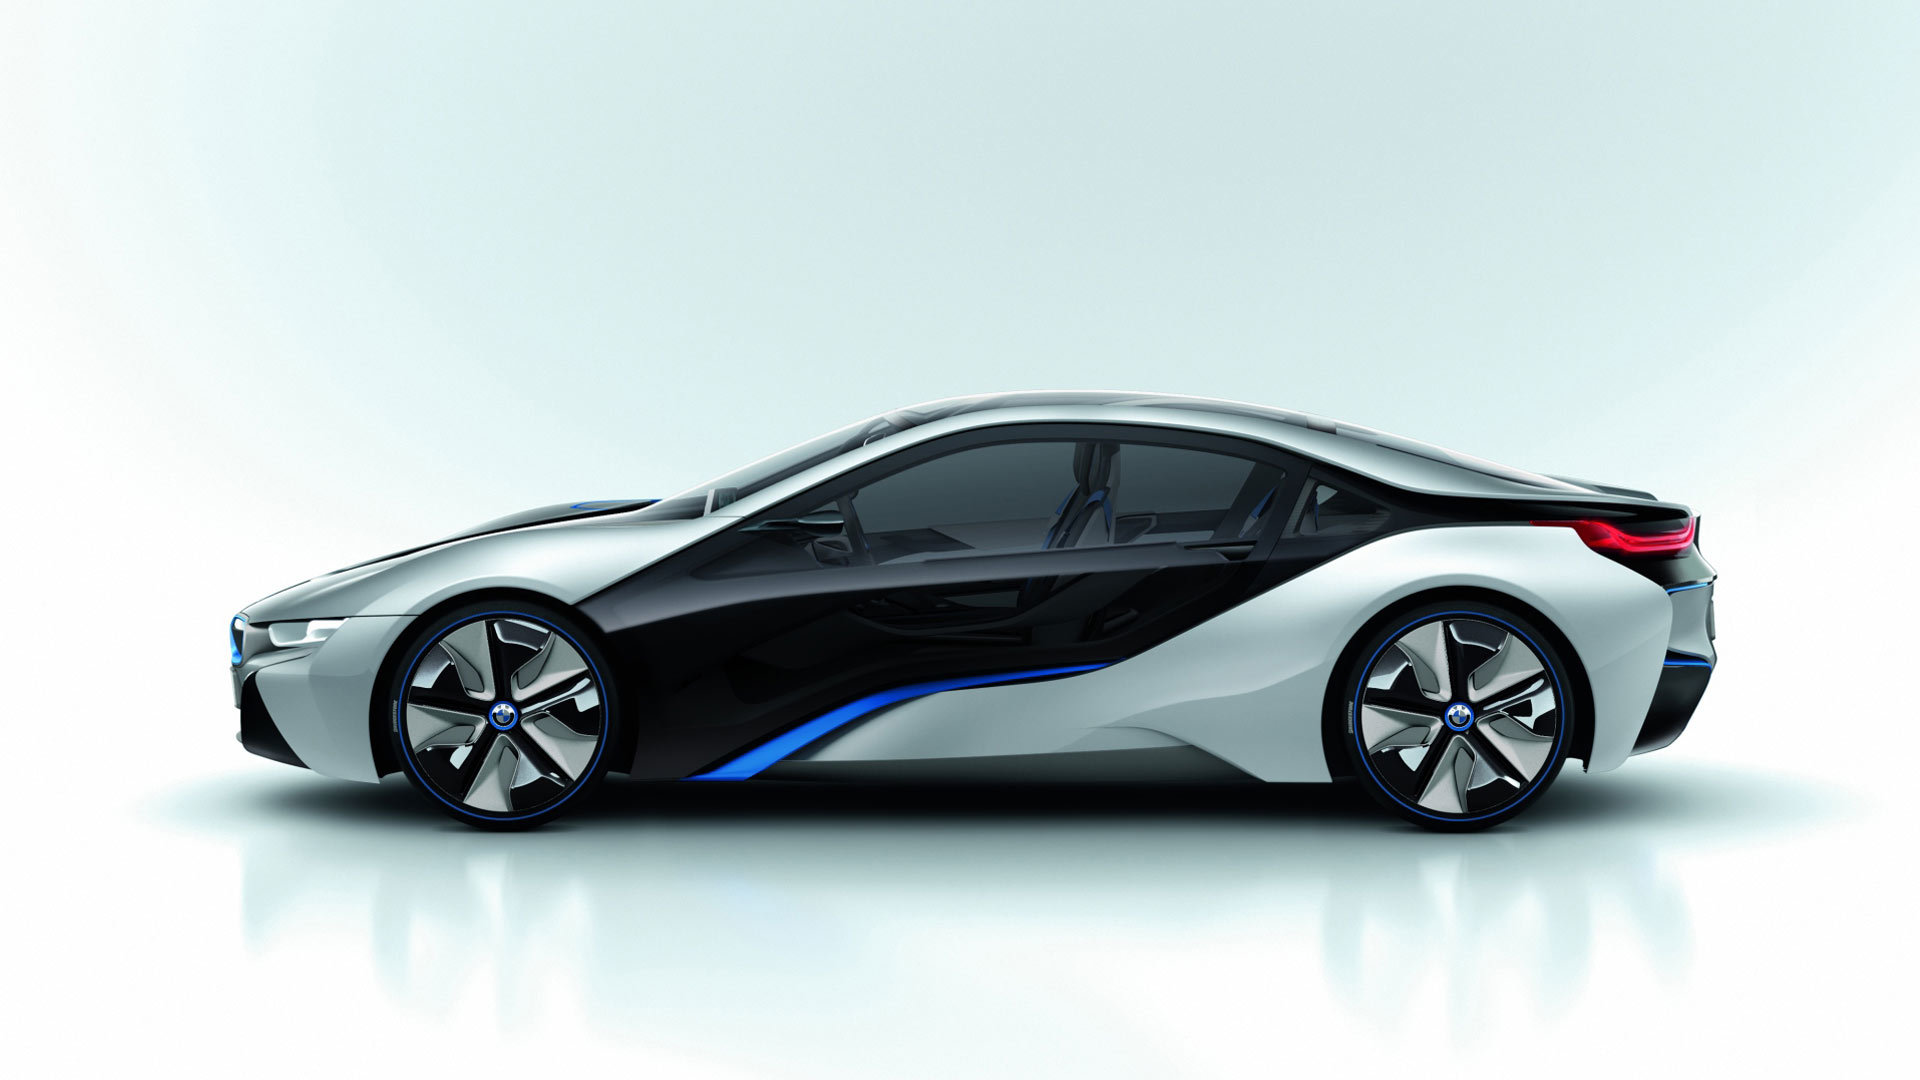 Bmw I8 Wallpapers 1920x1080 Full Hd 1080p Desktop Backgrounds